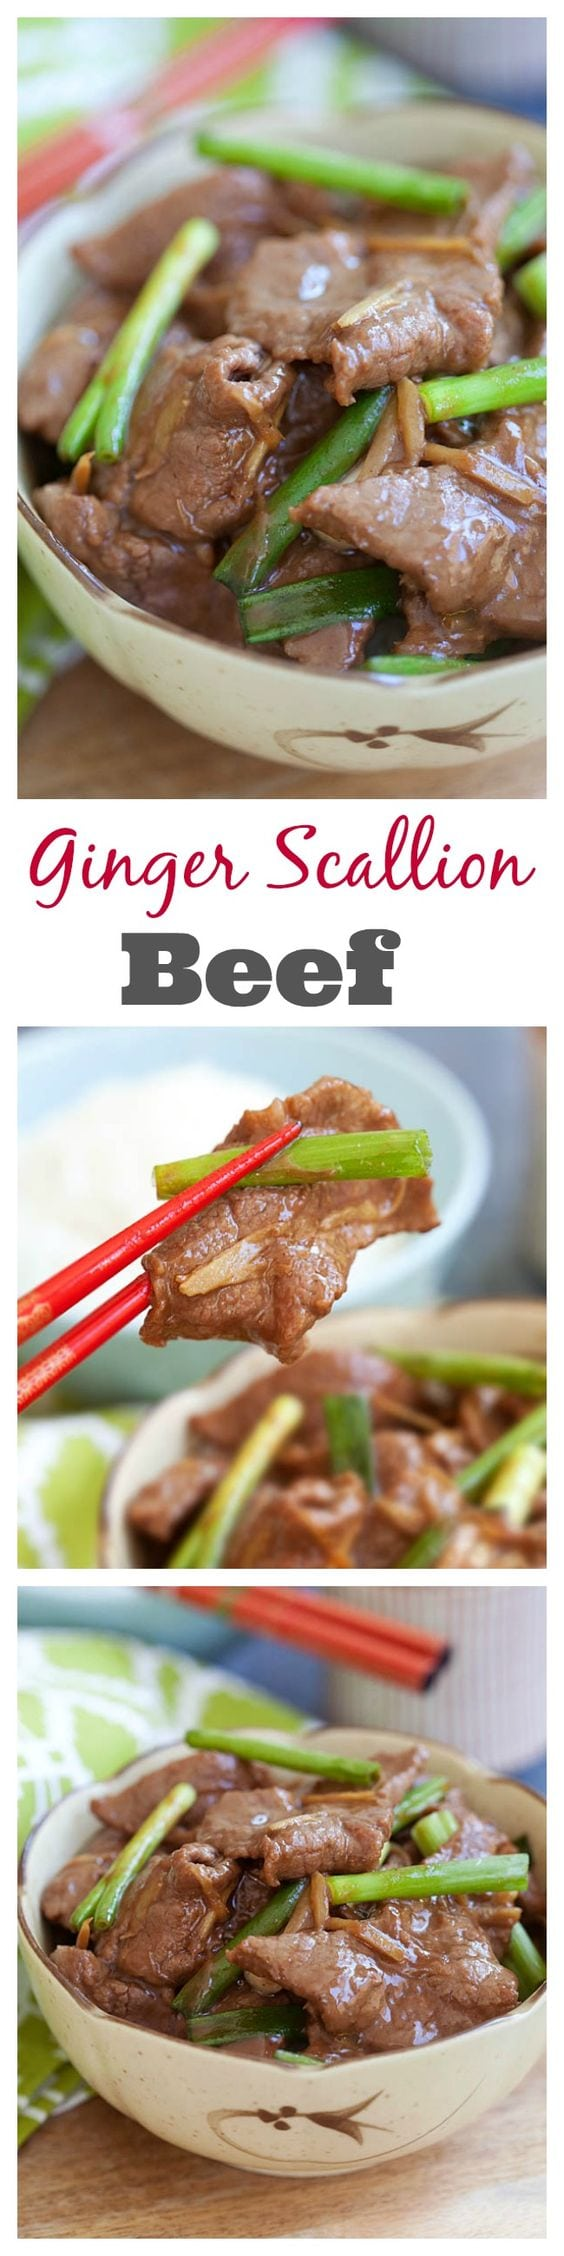 Ginger and Scallion Beef Stir-fry - Tender, juicy, and super delicious recipe that's better than Chinatown. Make it yourself quick and easy at home. | rasamalaysia.com